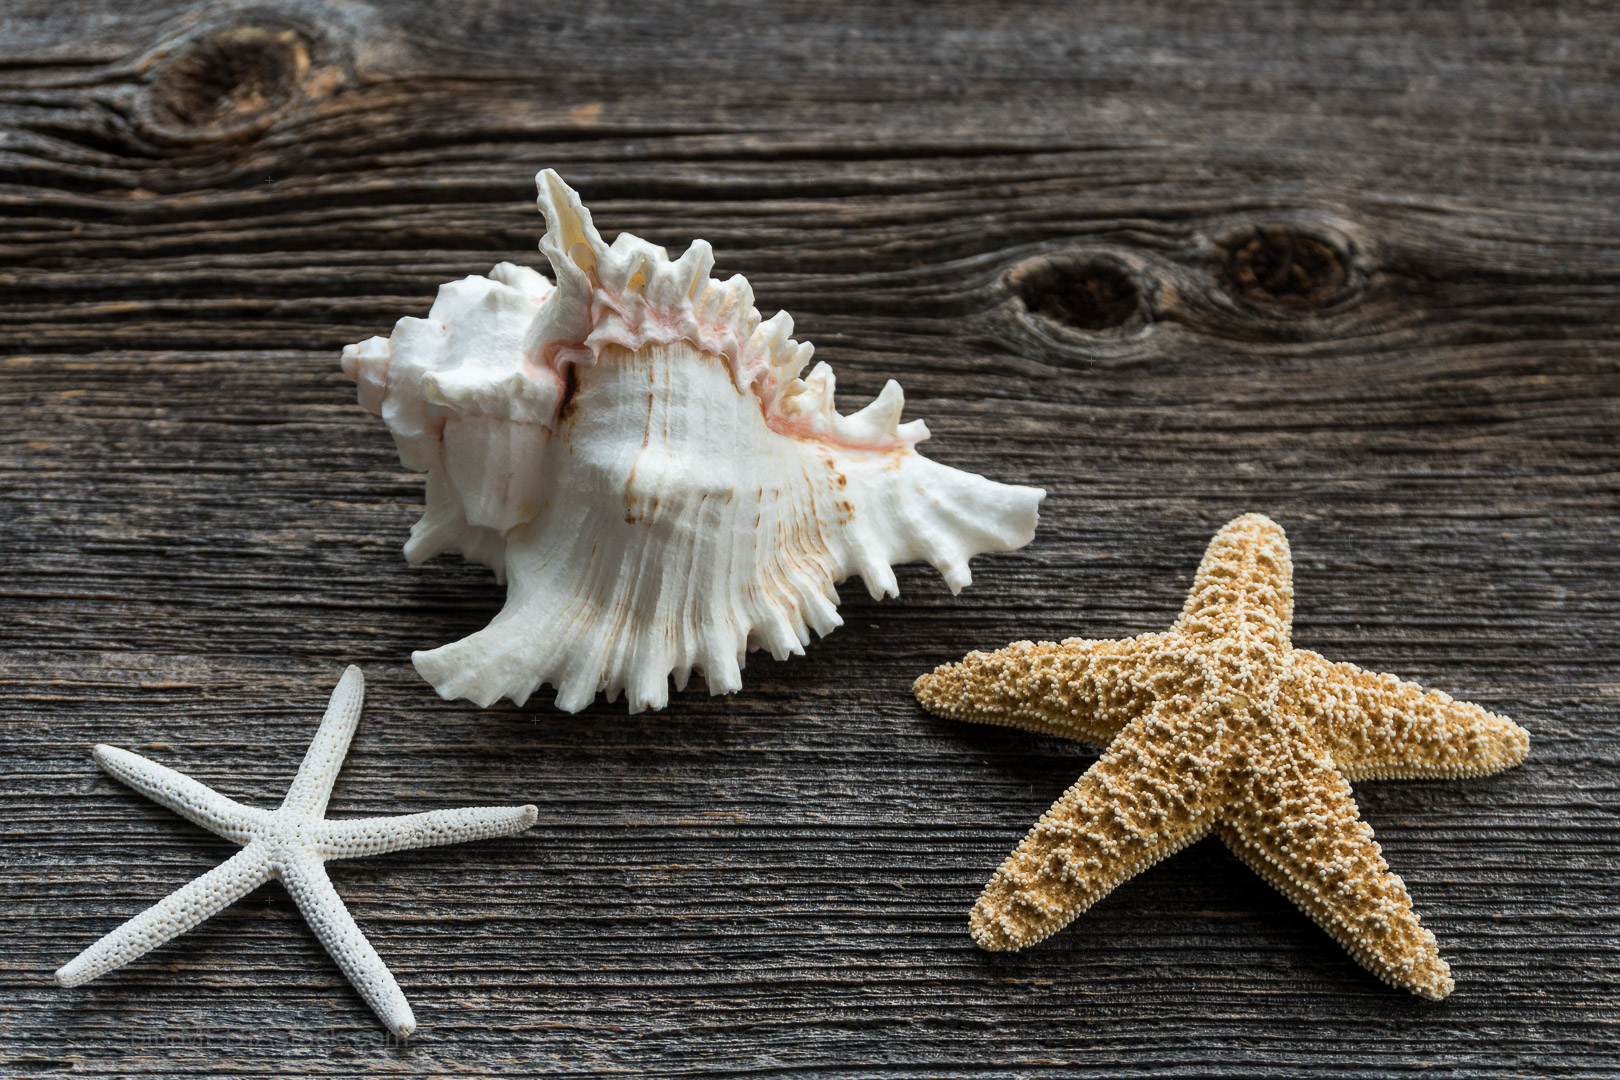 Trendy Stylish Starfish and Seashell on Vintage Barn Board With